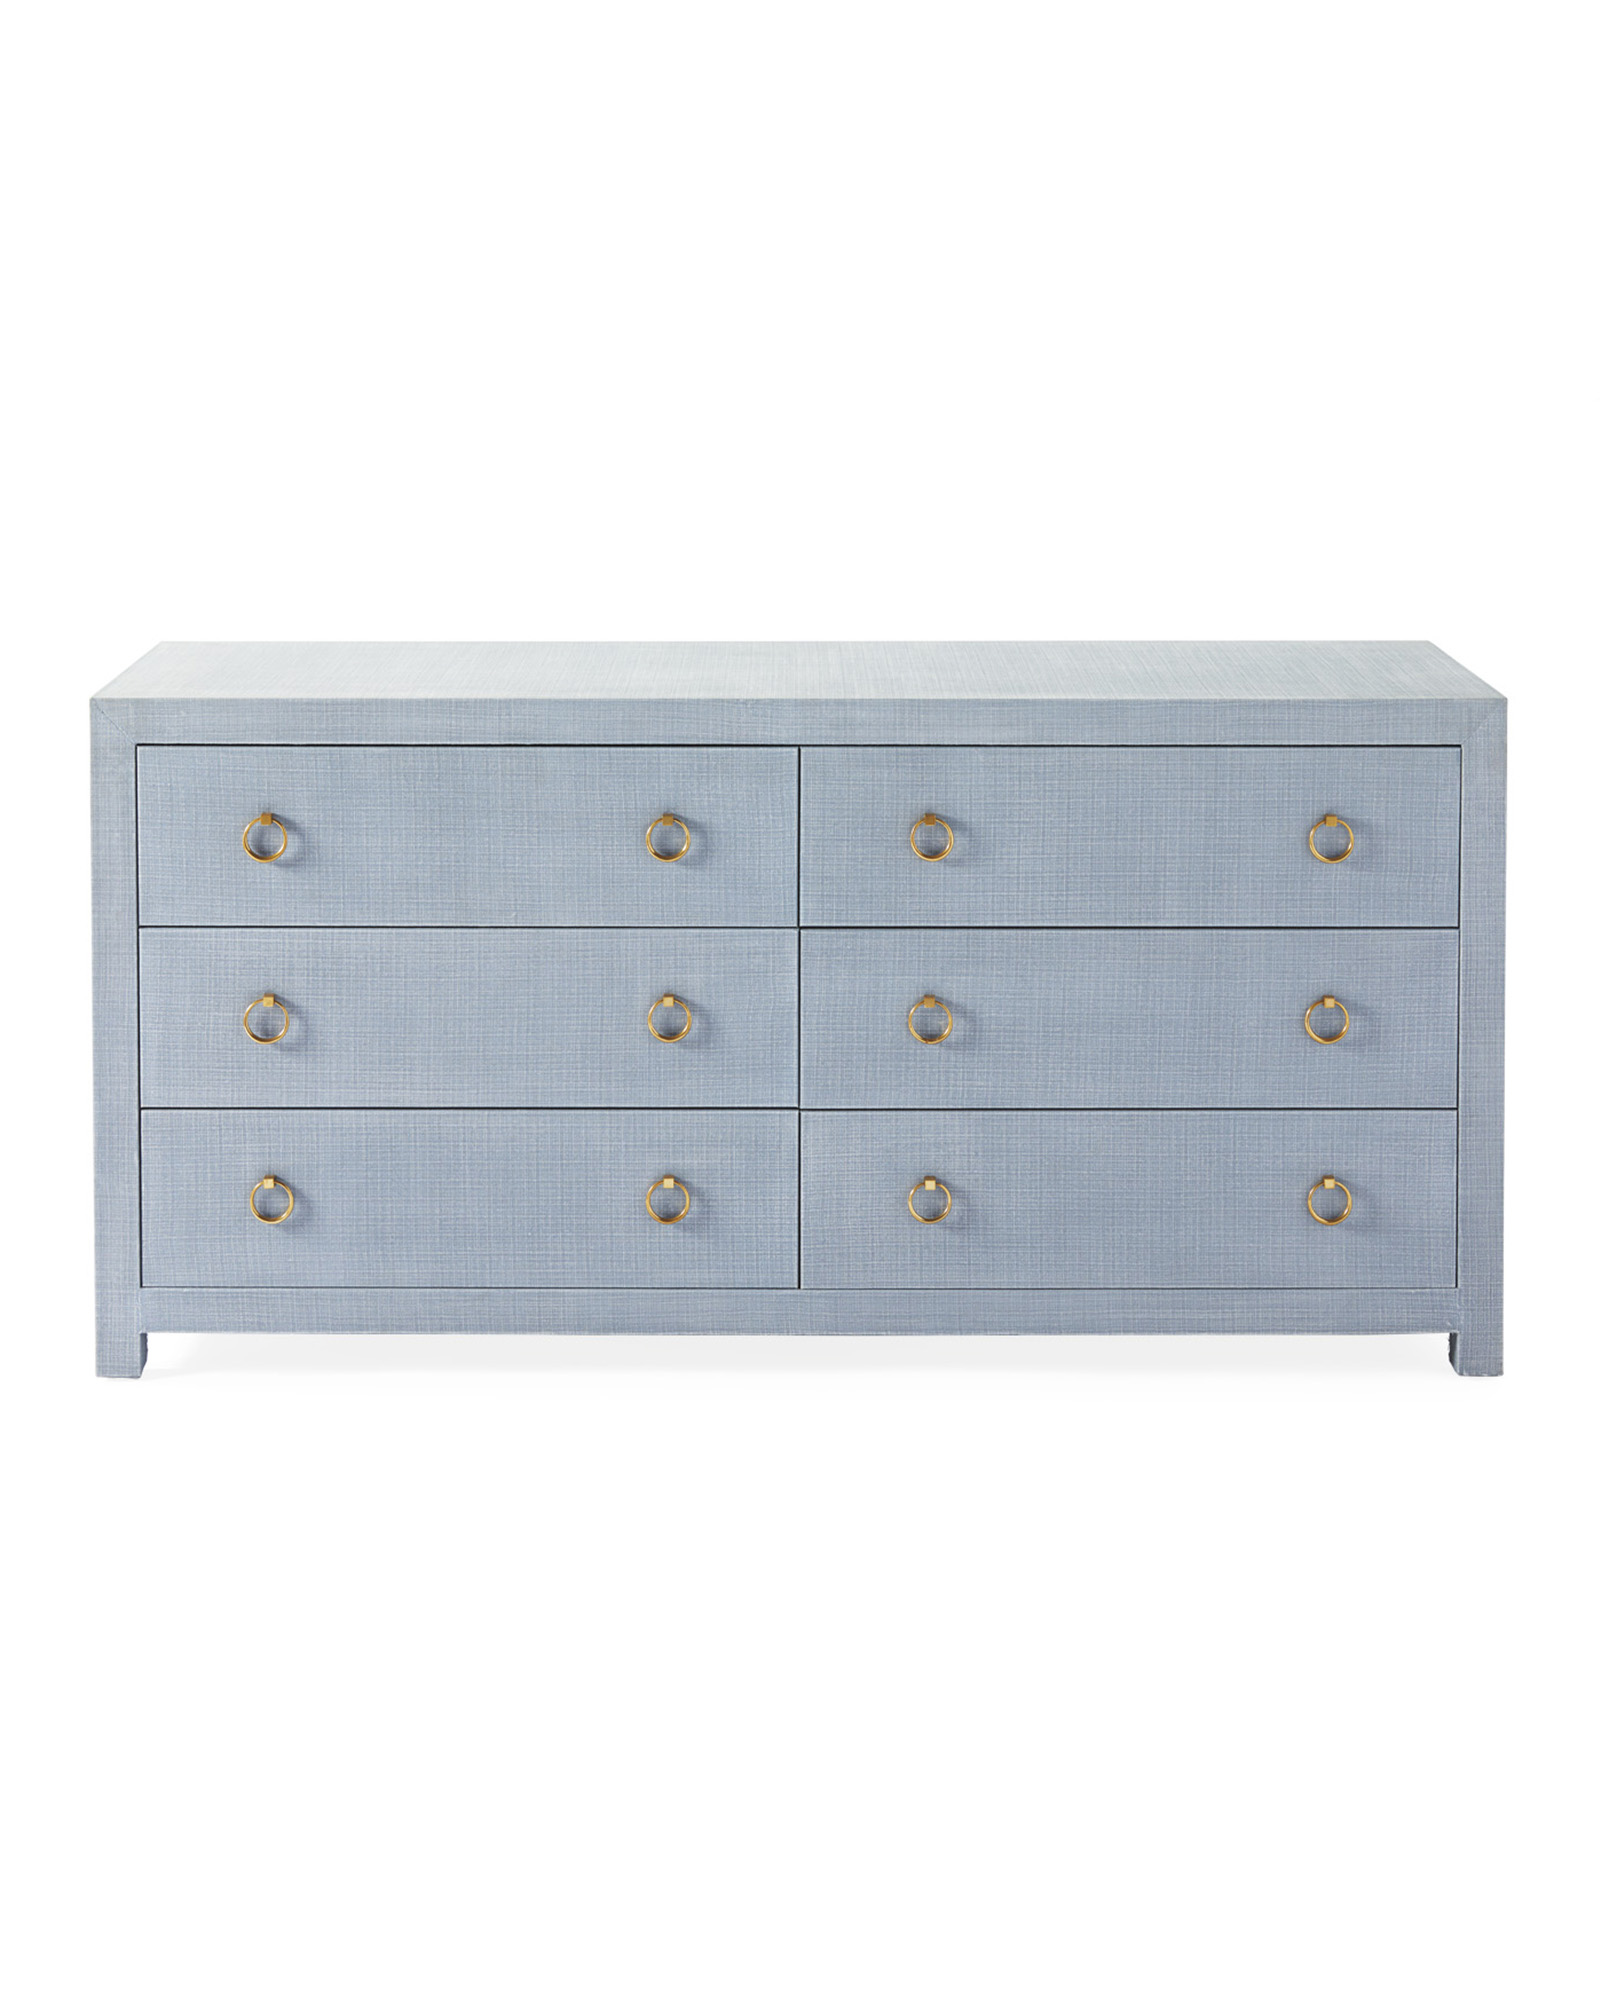 Driftway Dresser, Coastal Blue